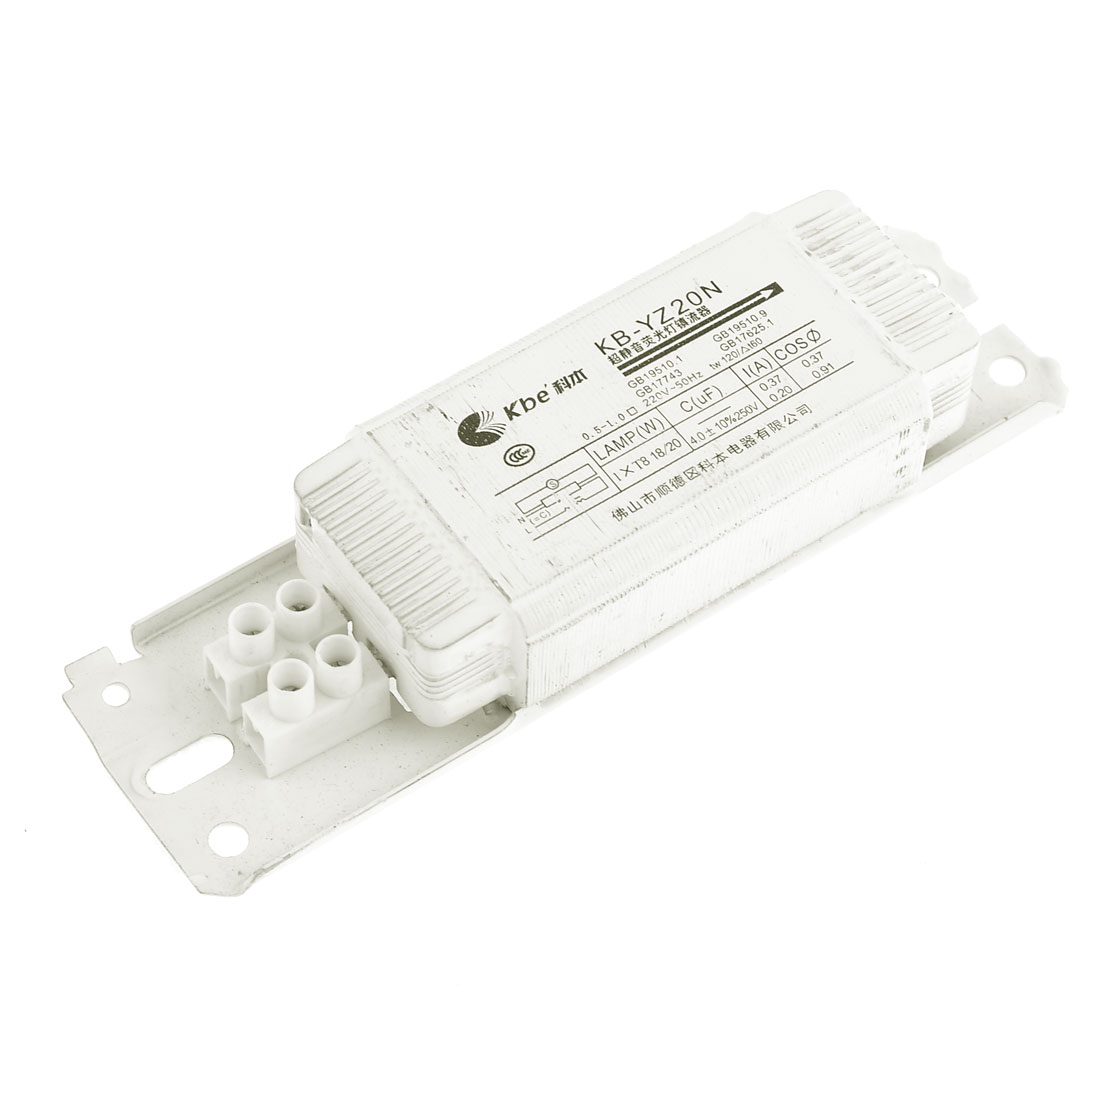 School Home AC 220V 0.2A 20W Fluorescent Lamp Light Ballast